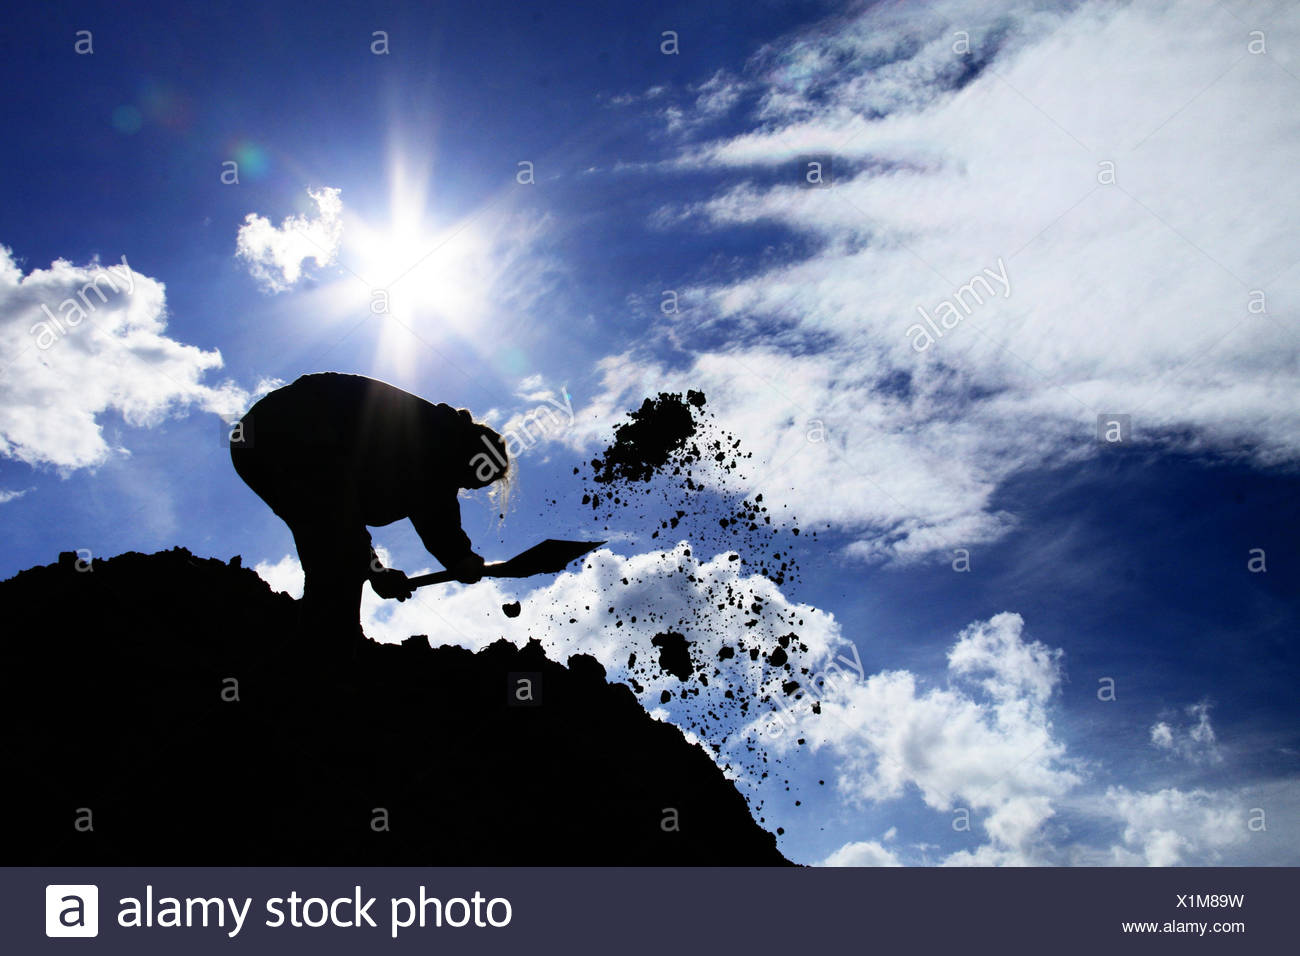 silhouette,digging,excavation - Stock Image